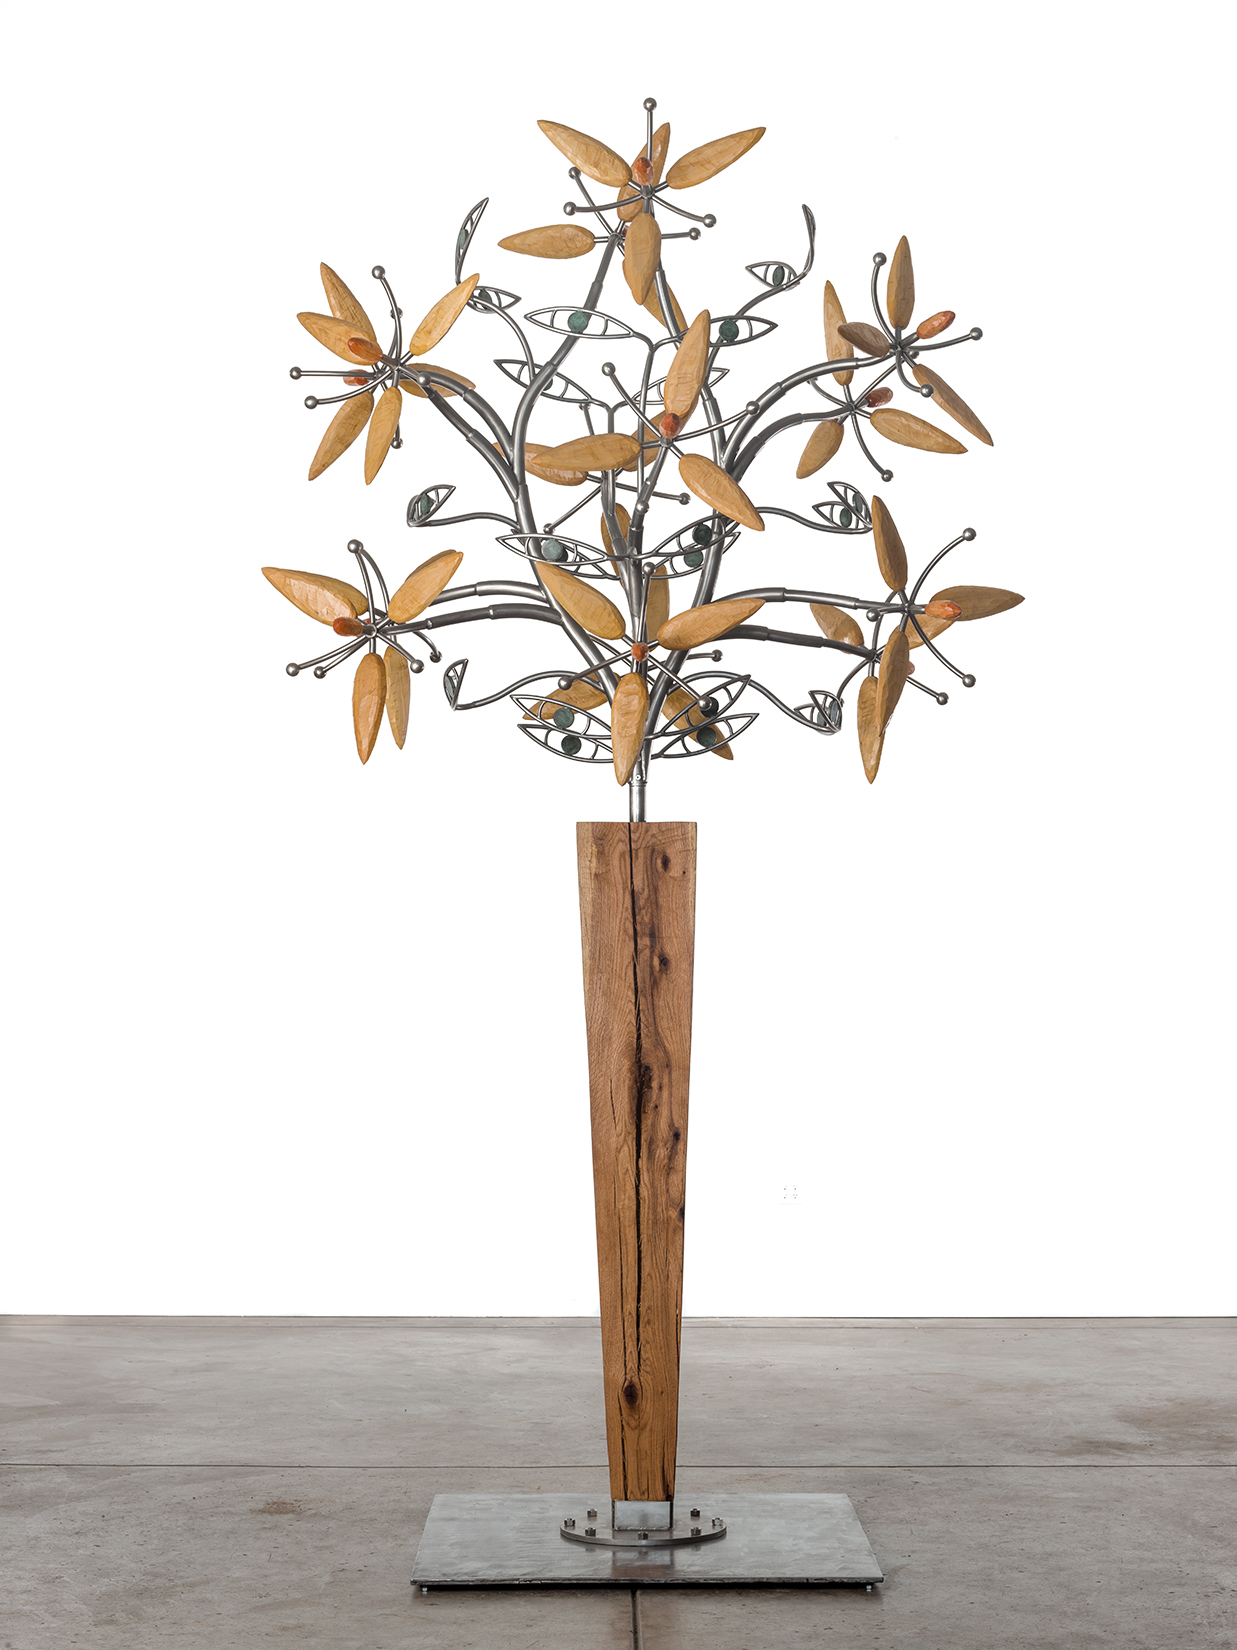 Standing Oak Vase with 14 Flowers, 2016